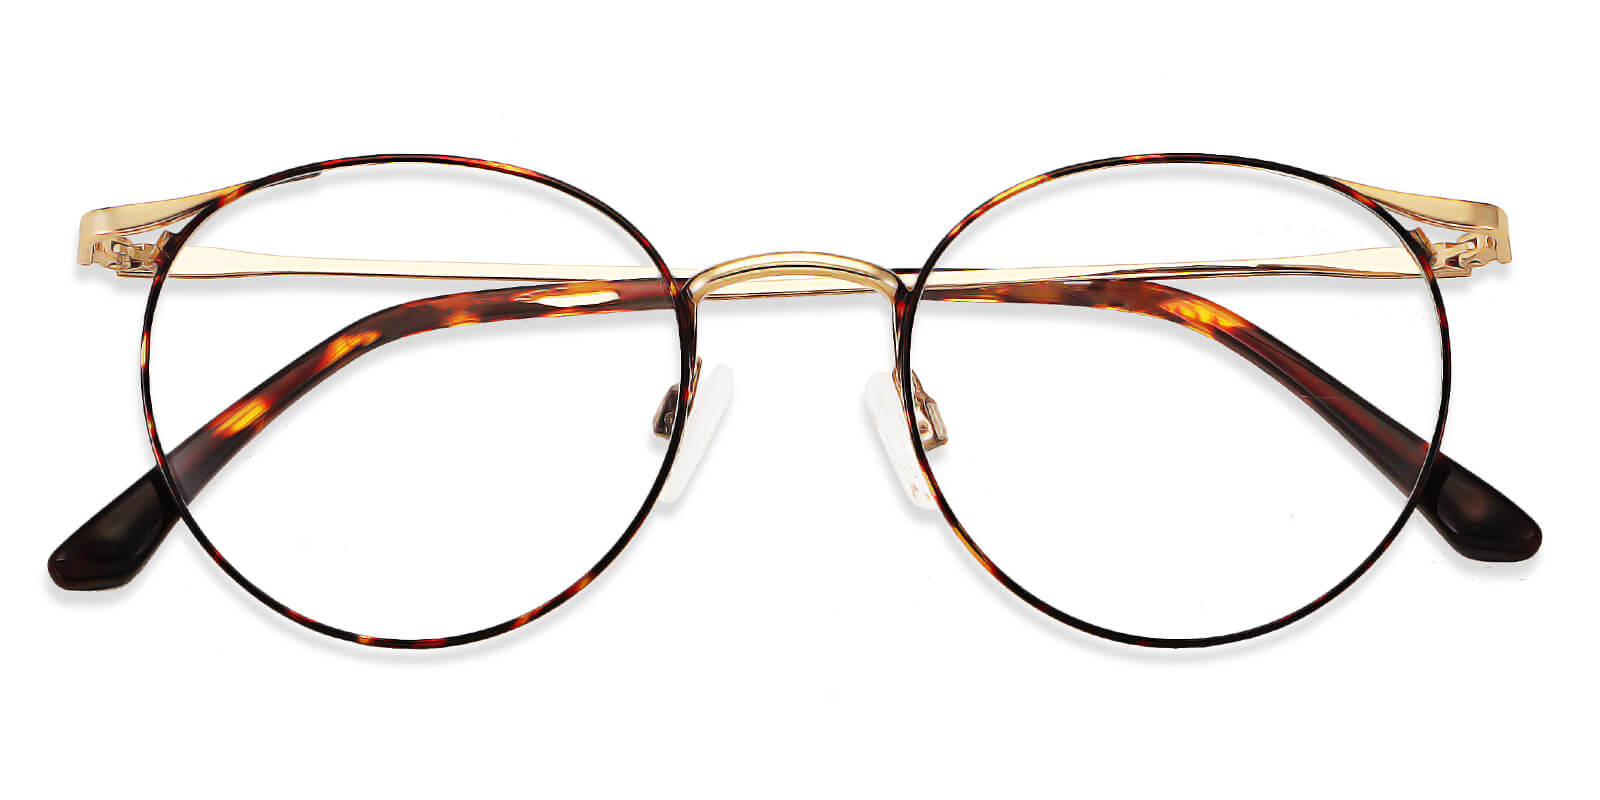 Kaz-Round glasses with metal frames for women and men